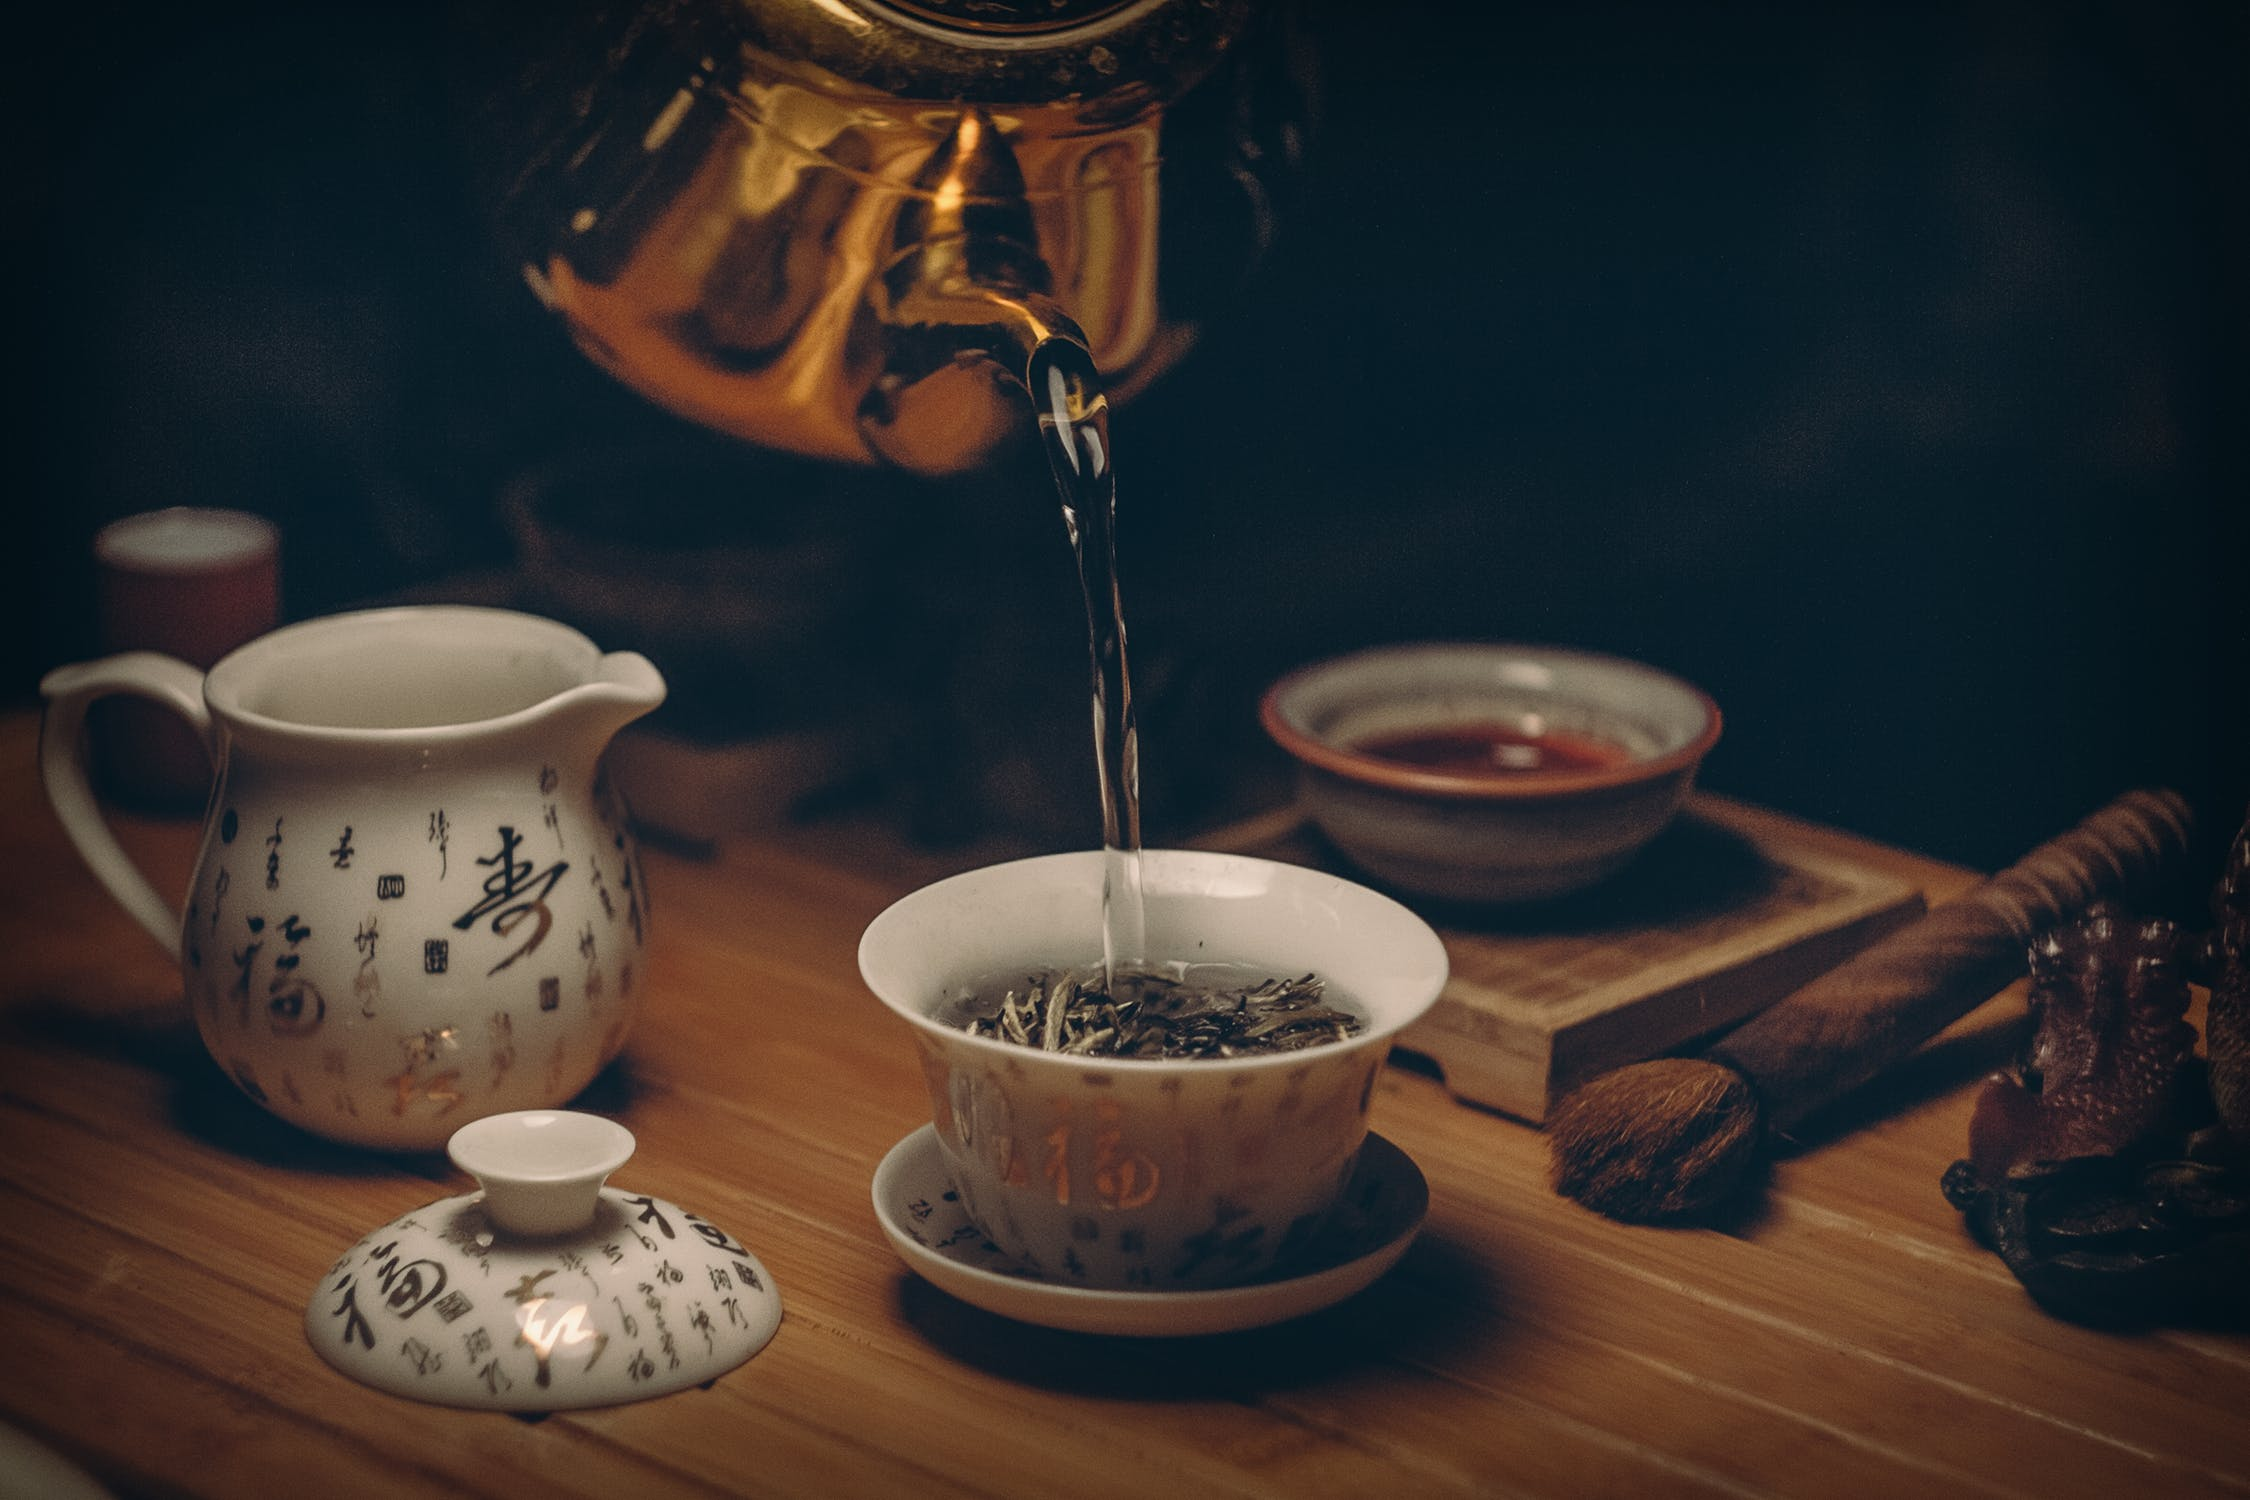 Pouring Tea photo from Pexels